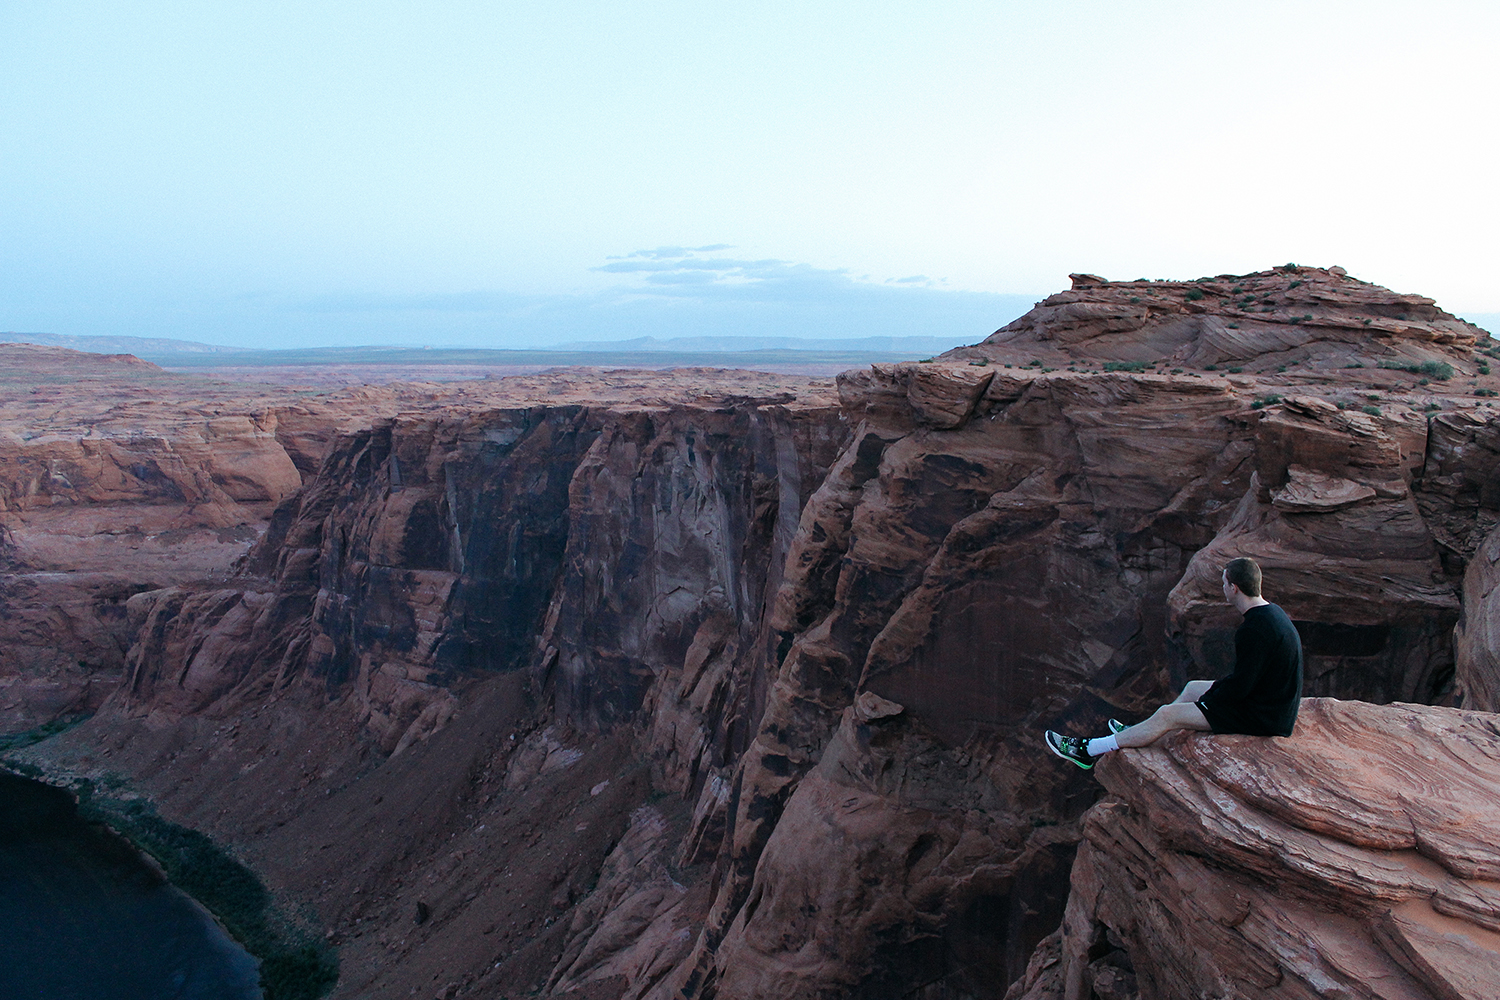 A person sitting at Horseshoe Bend.